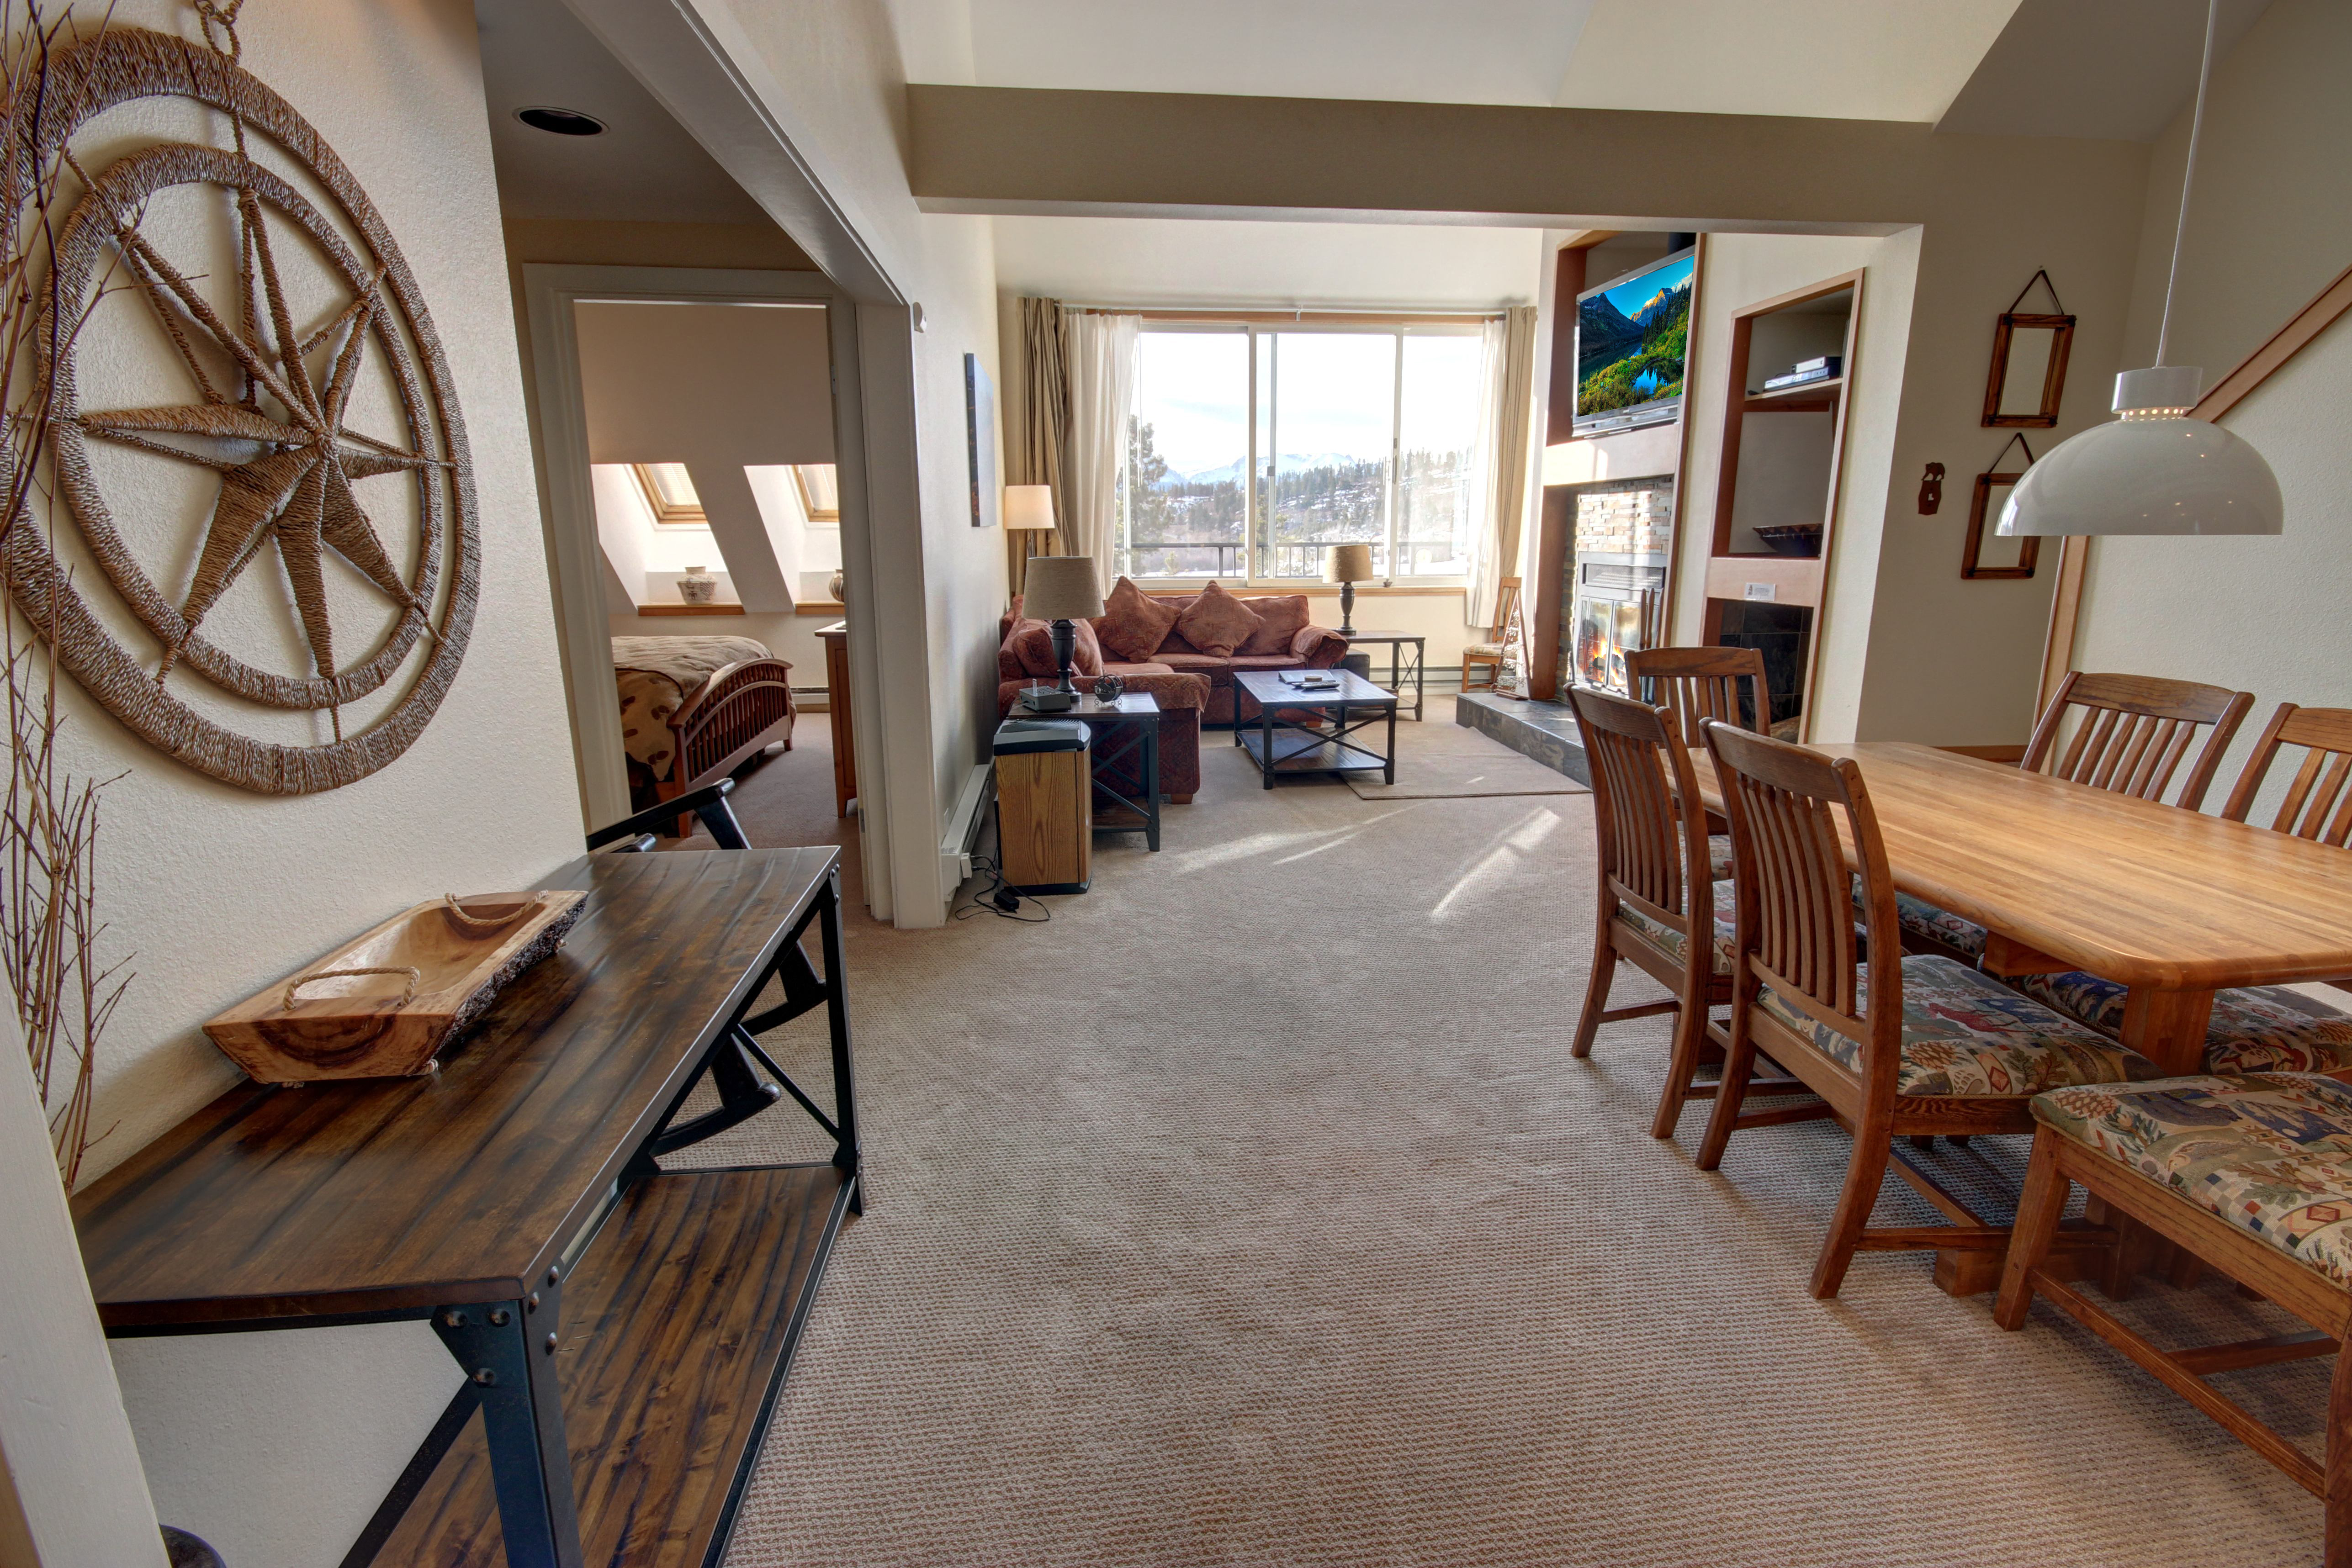 Living space with plenty of room for kids to run around and have fun